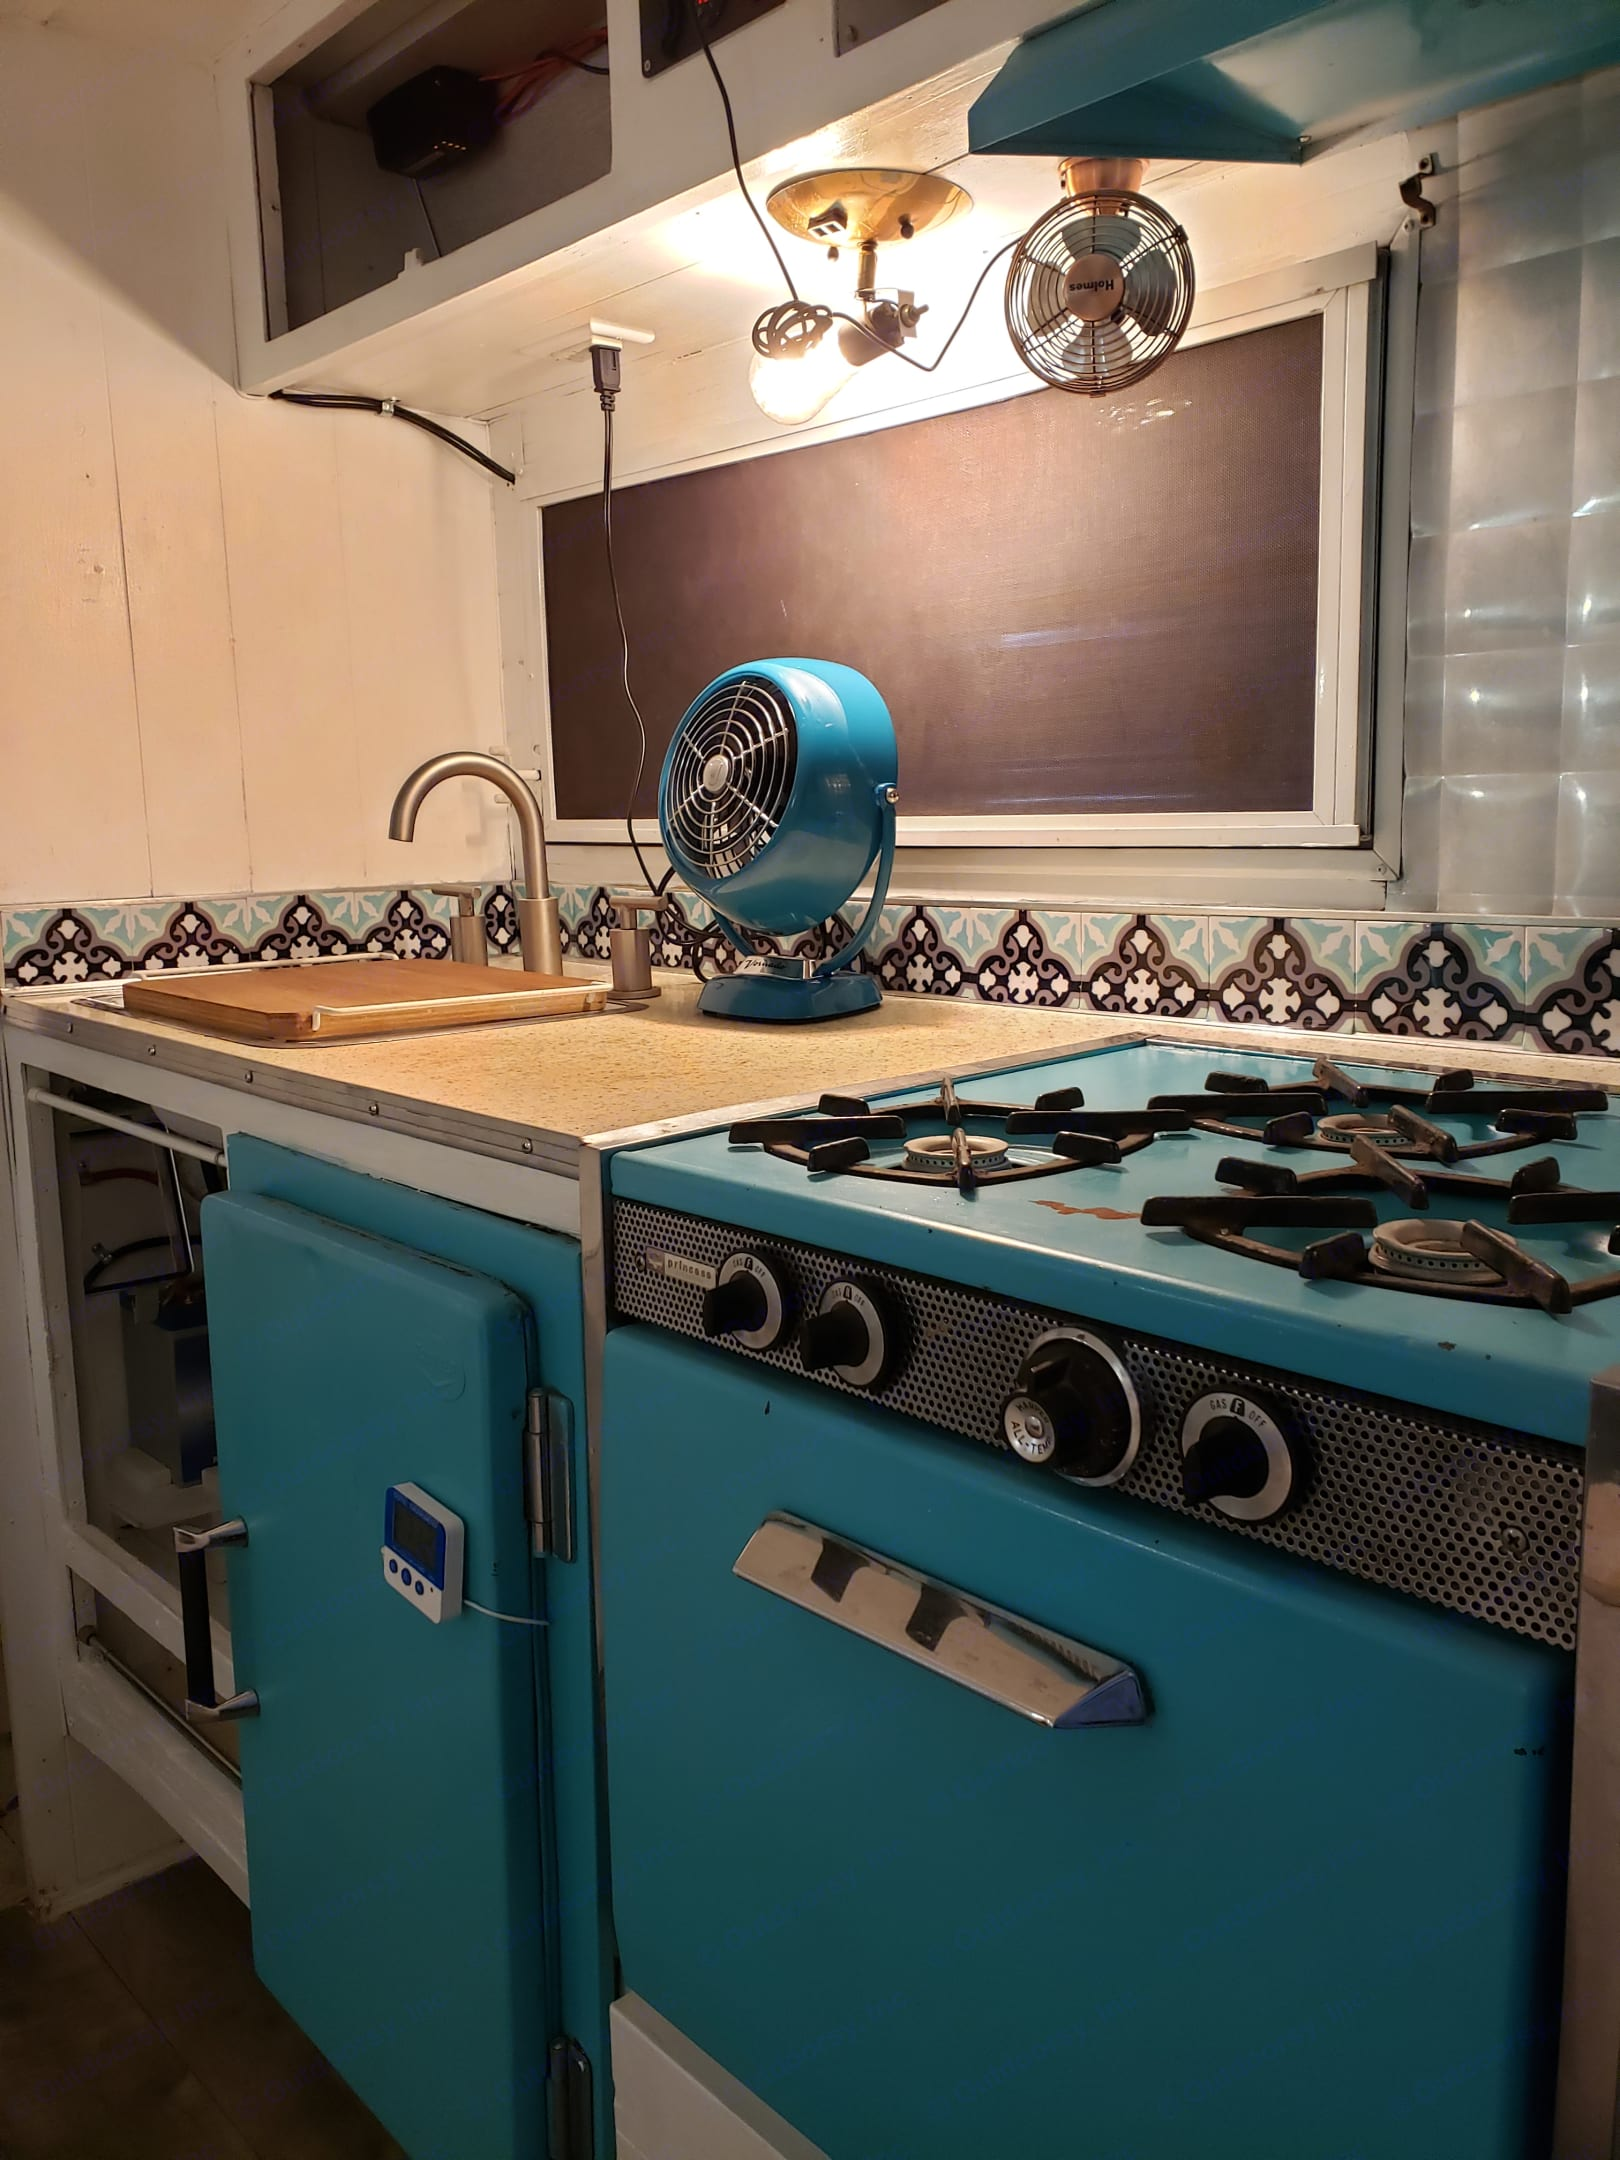 Fully functional kitchen with hot and cold water, gas range, under cabinet lighting, vent fan, and original icebox!. Aristocrat Lo-Liner 1963